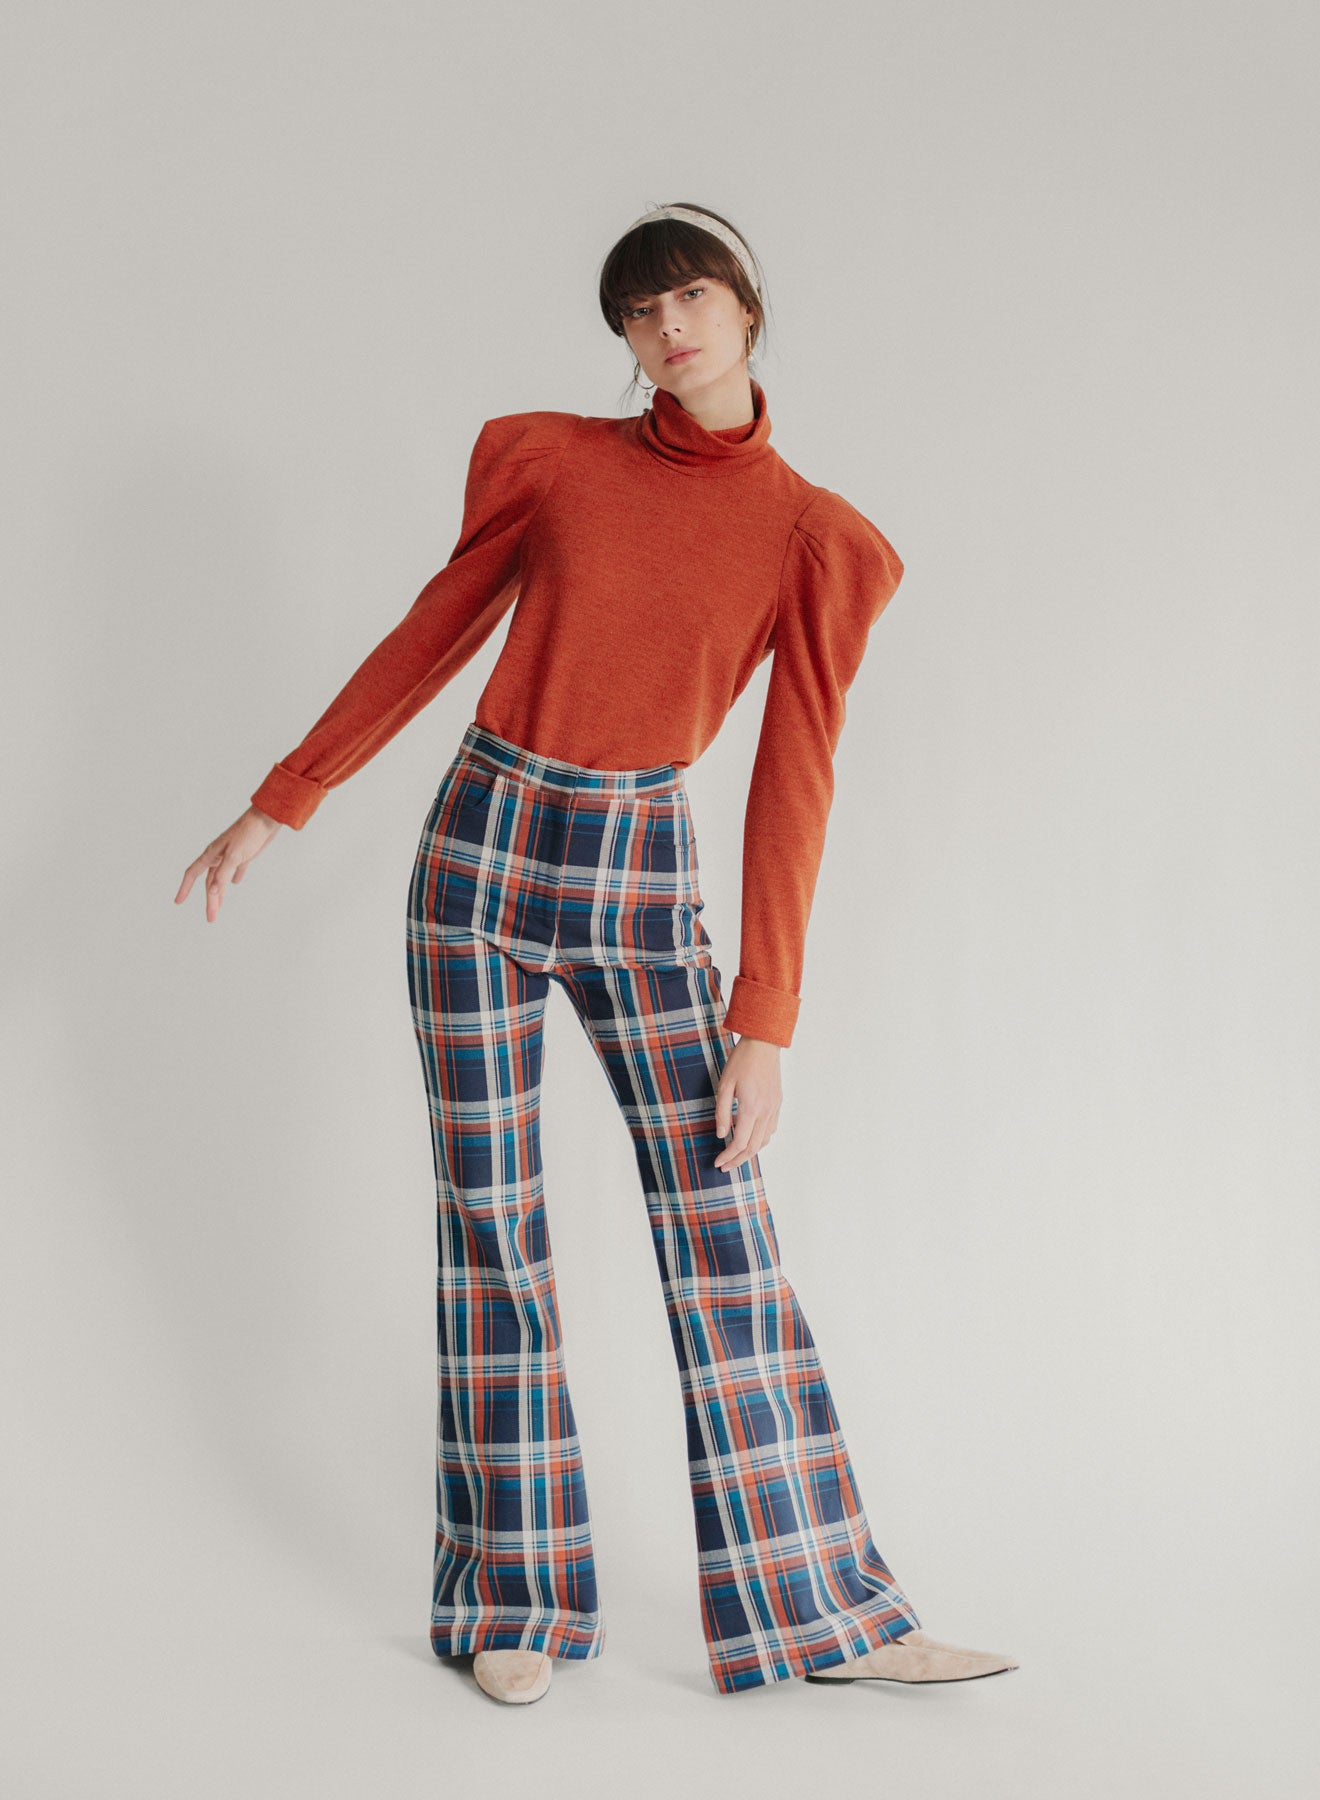 Petersyn-Fabio-Bryant-Pant-Fall 19